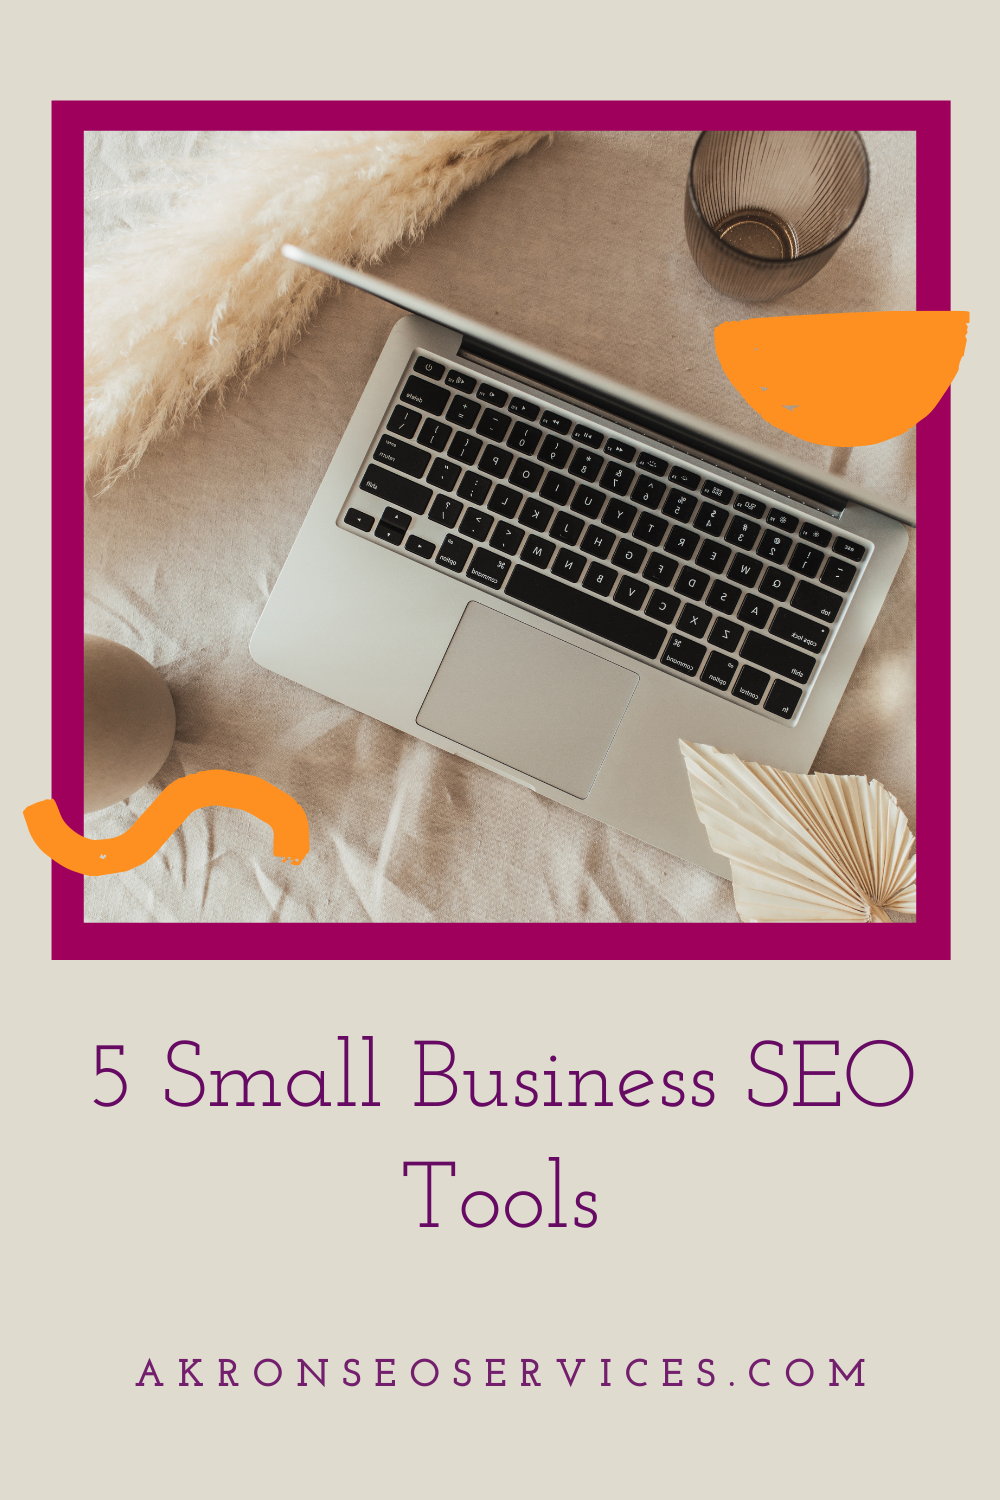 5 Small Business SEO Tools